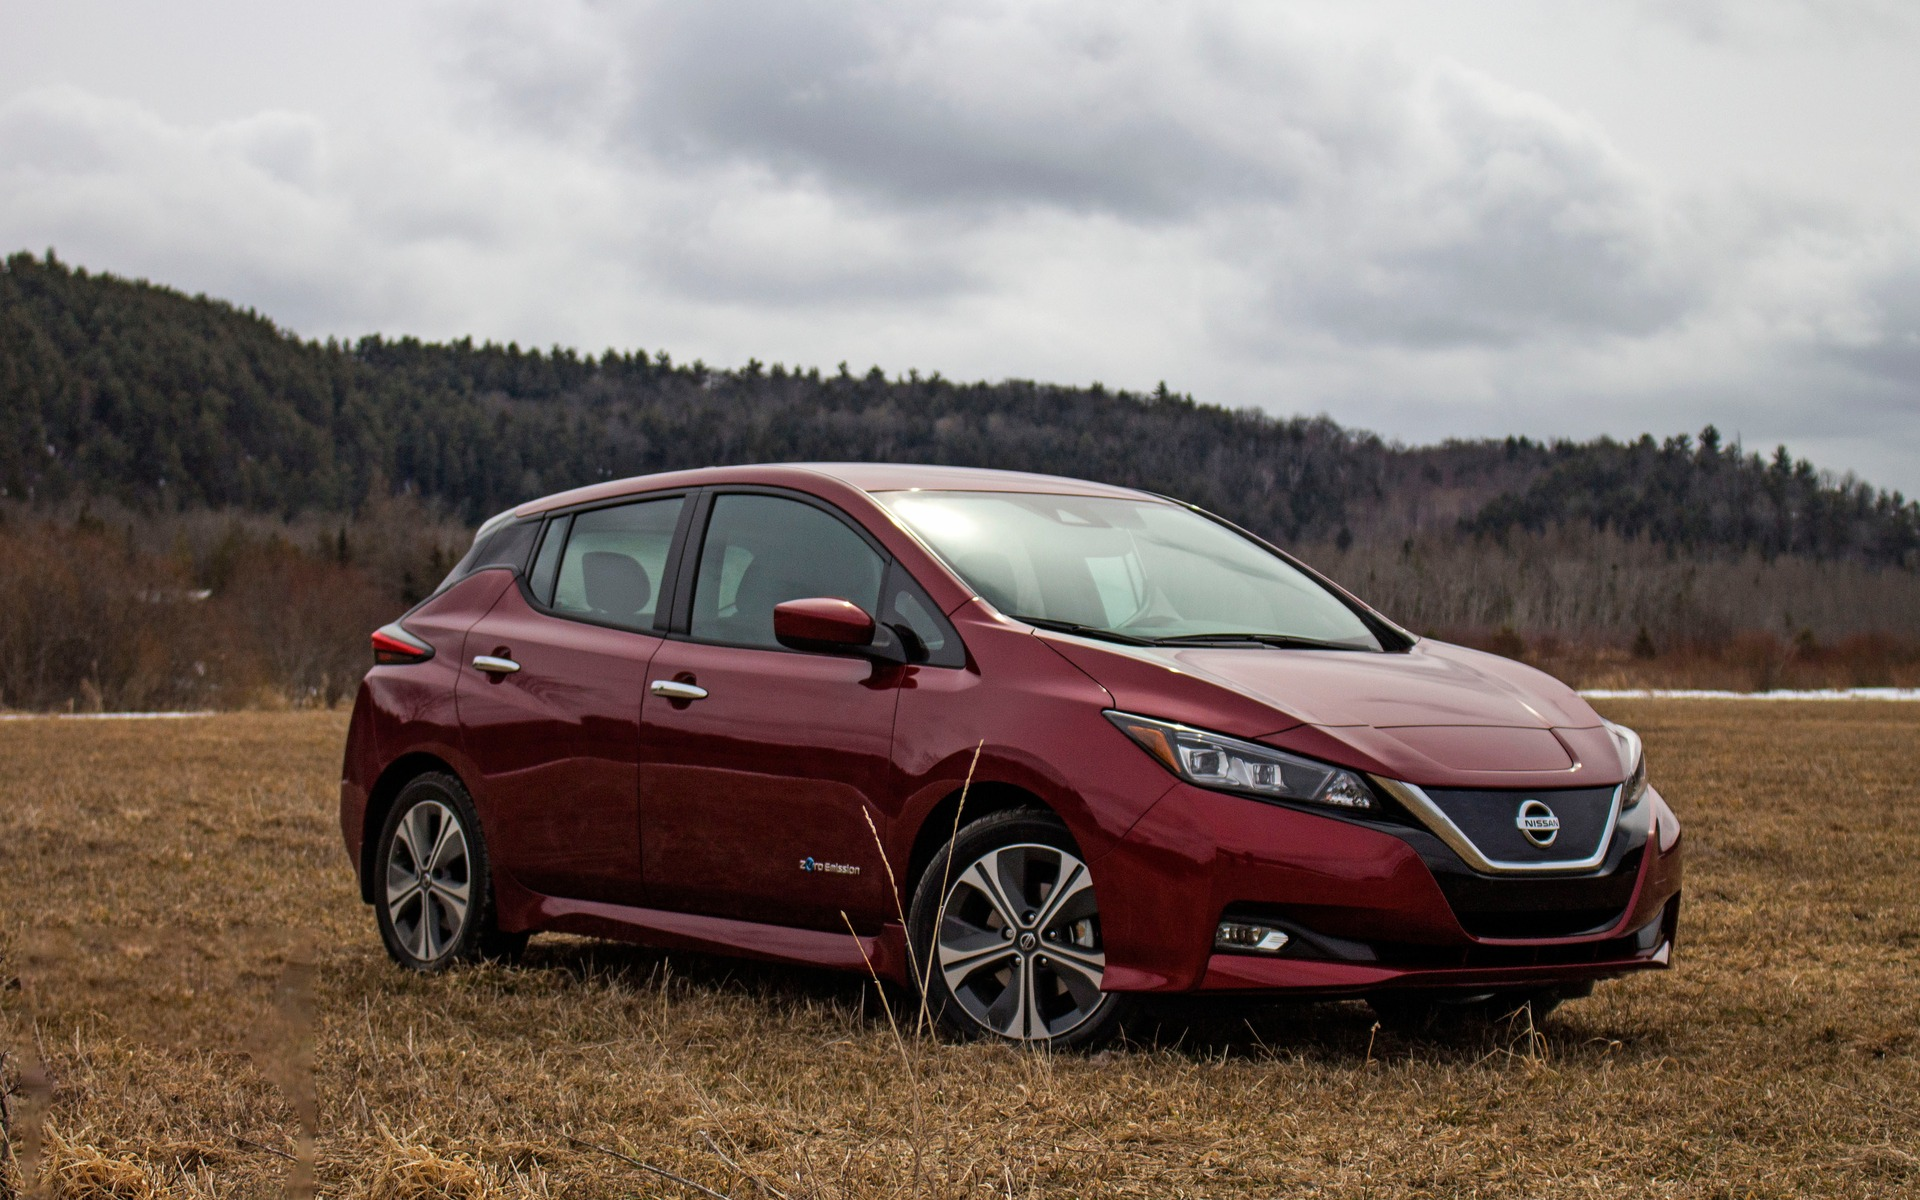 Nissan Leaf Electric Vehicle Geek News Central